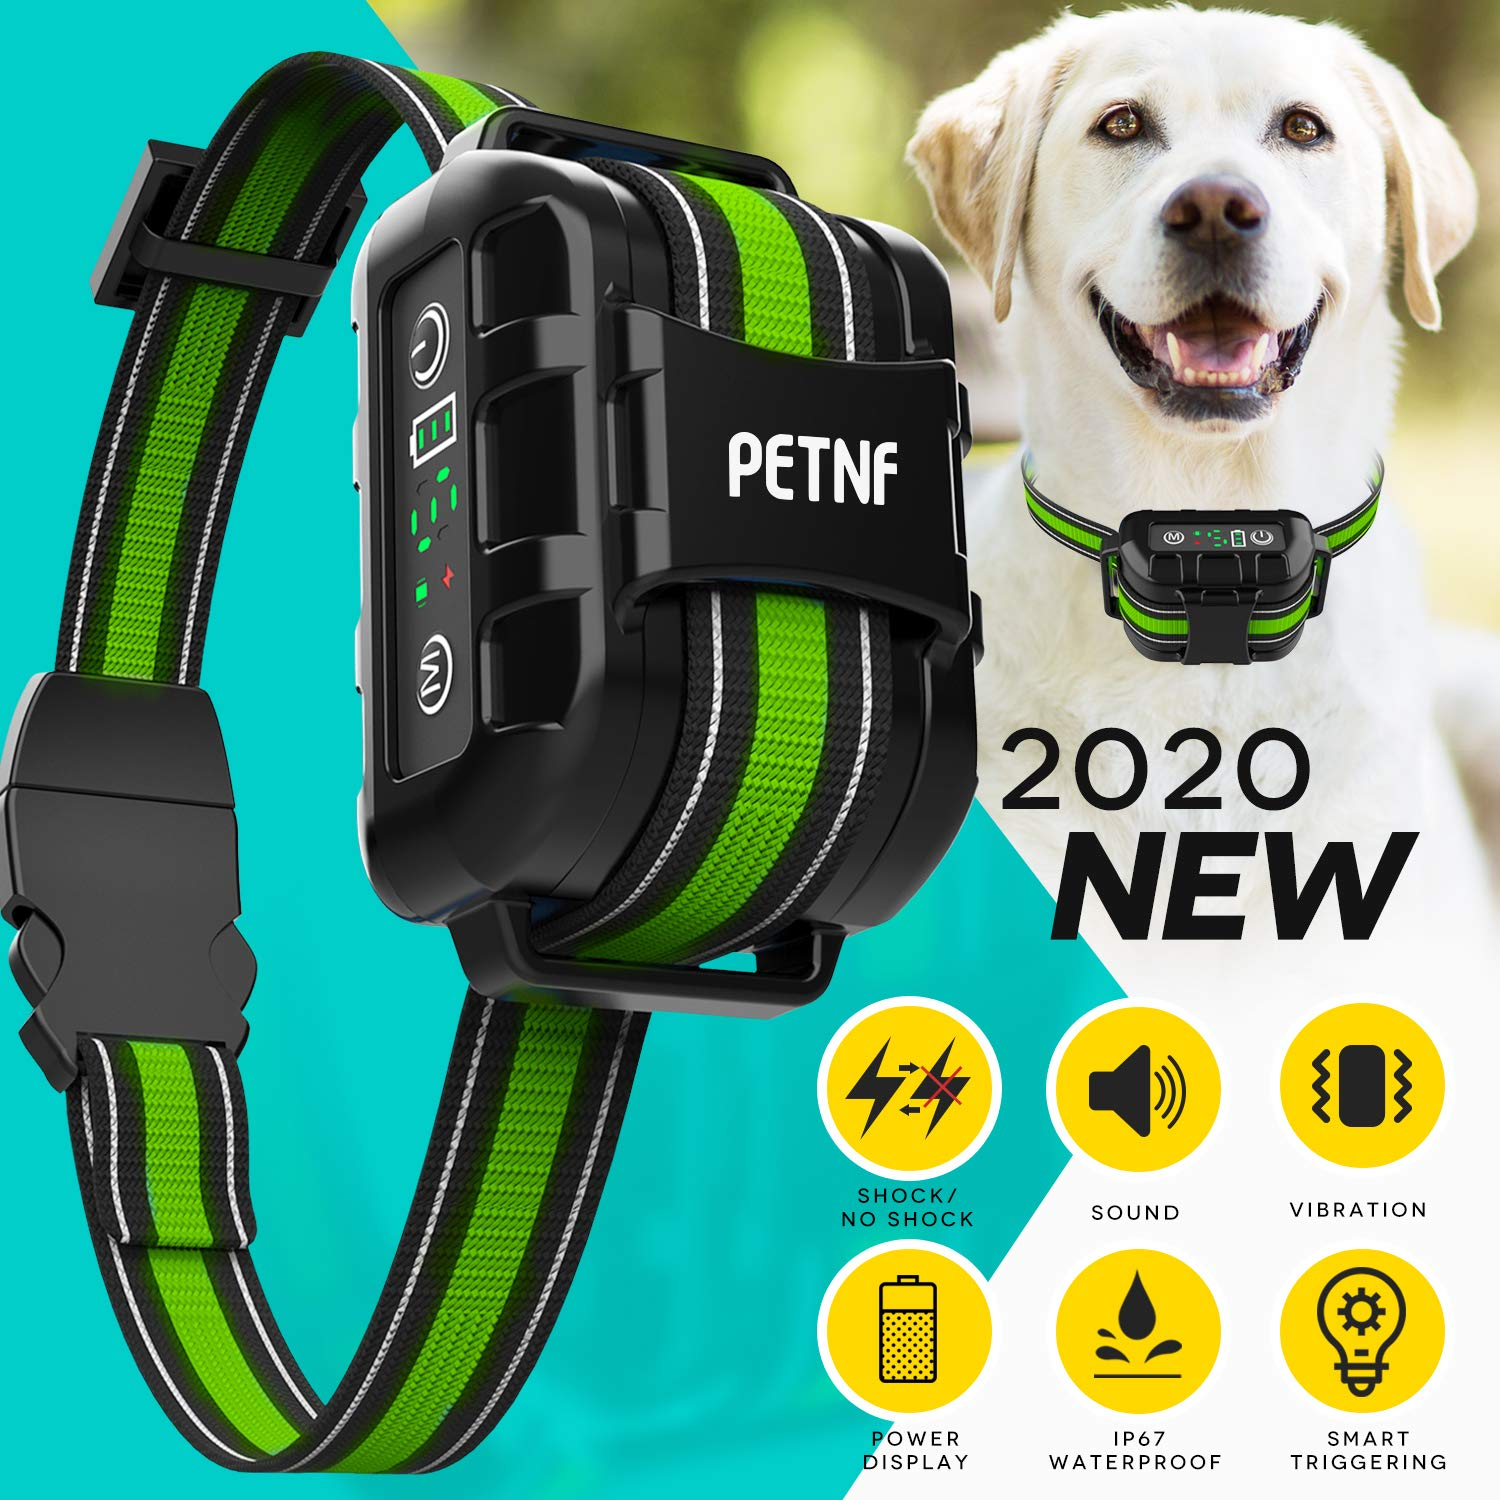 2020 Upgraded Bark Collar Large Medium Small Dog,Dog Barking Control Devices Deterrent,E collars for dogs,Rechargeable Waterproof Shock Collar for Dogs,Anti Barking Device for Dogs,Dog Shock Collar by petnf